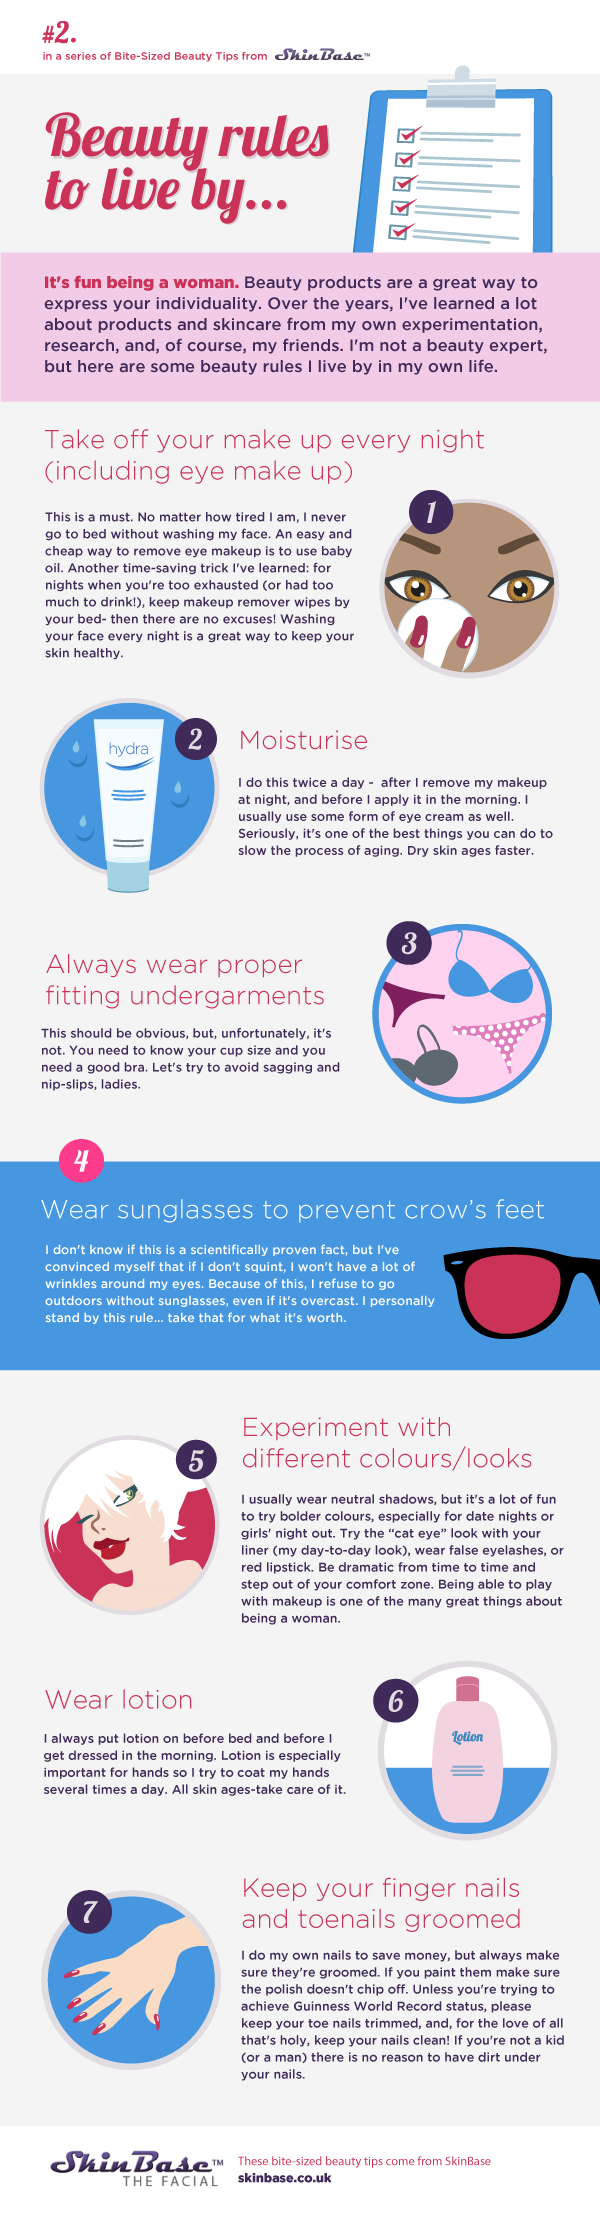 'Beauty Tips to Live By' infographic from SkinBase